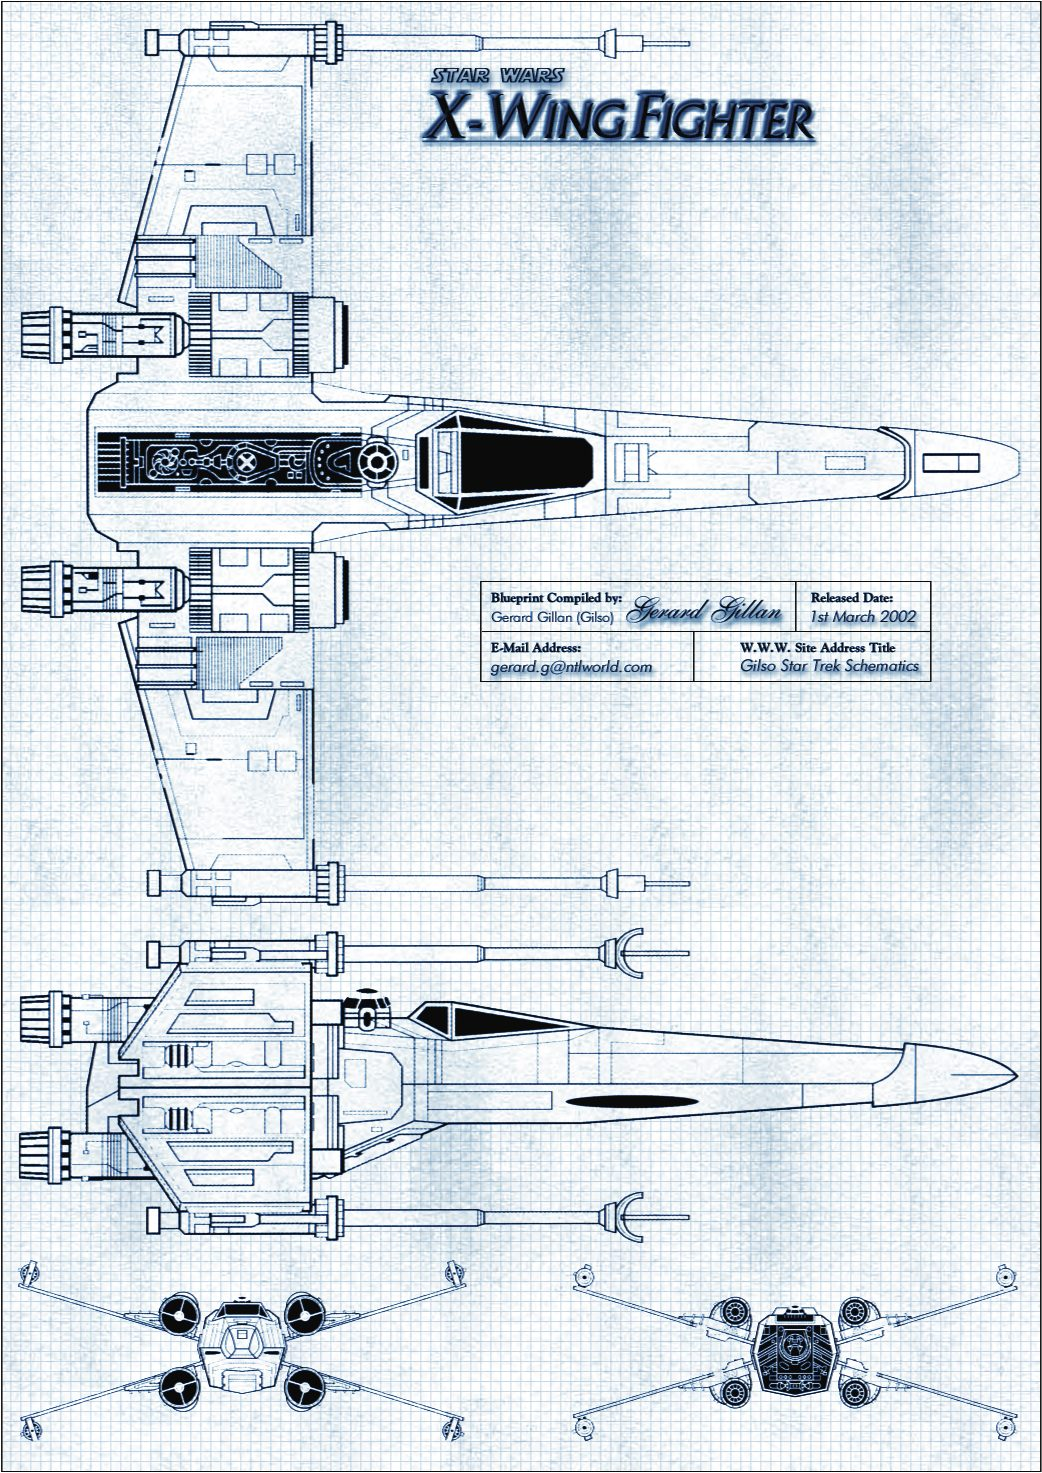 Blueprints of Ships and Vessels from the Star Wars Franchise (Page on a wing fighter schematics, slave 1 schematics, b-wing schematics, at-at schematics, y-wing schematics, tie interceptor schematics, minecraft schematics, halo warthog schematics,